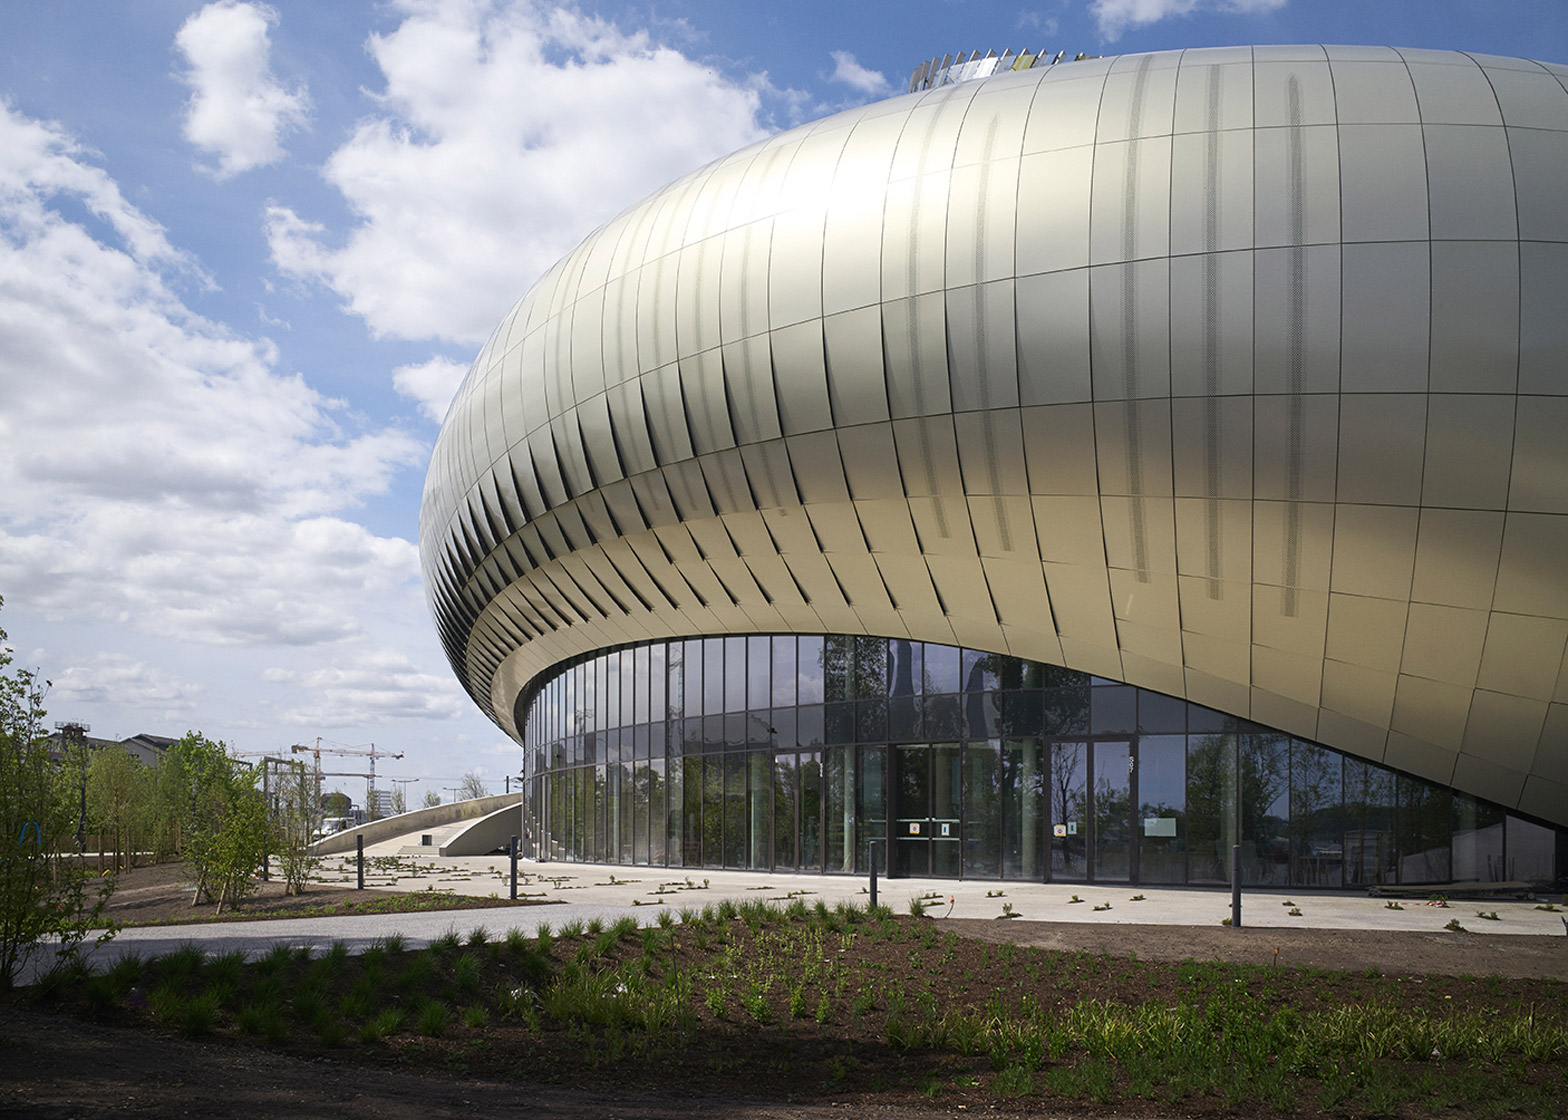 La Cité du Vin, a new wine museum in Bordeaux by XTU